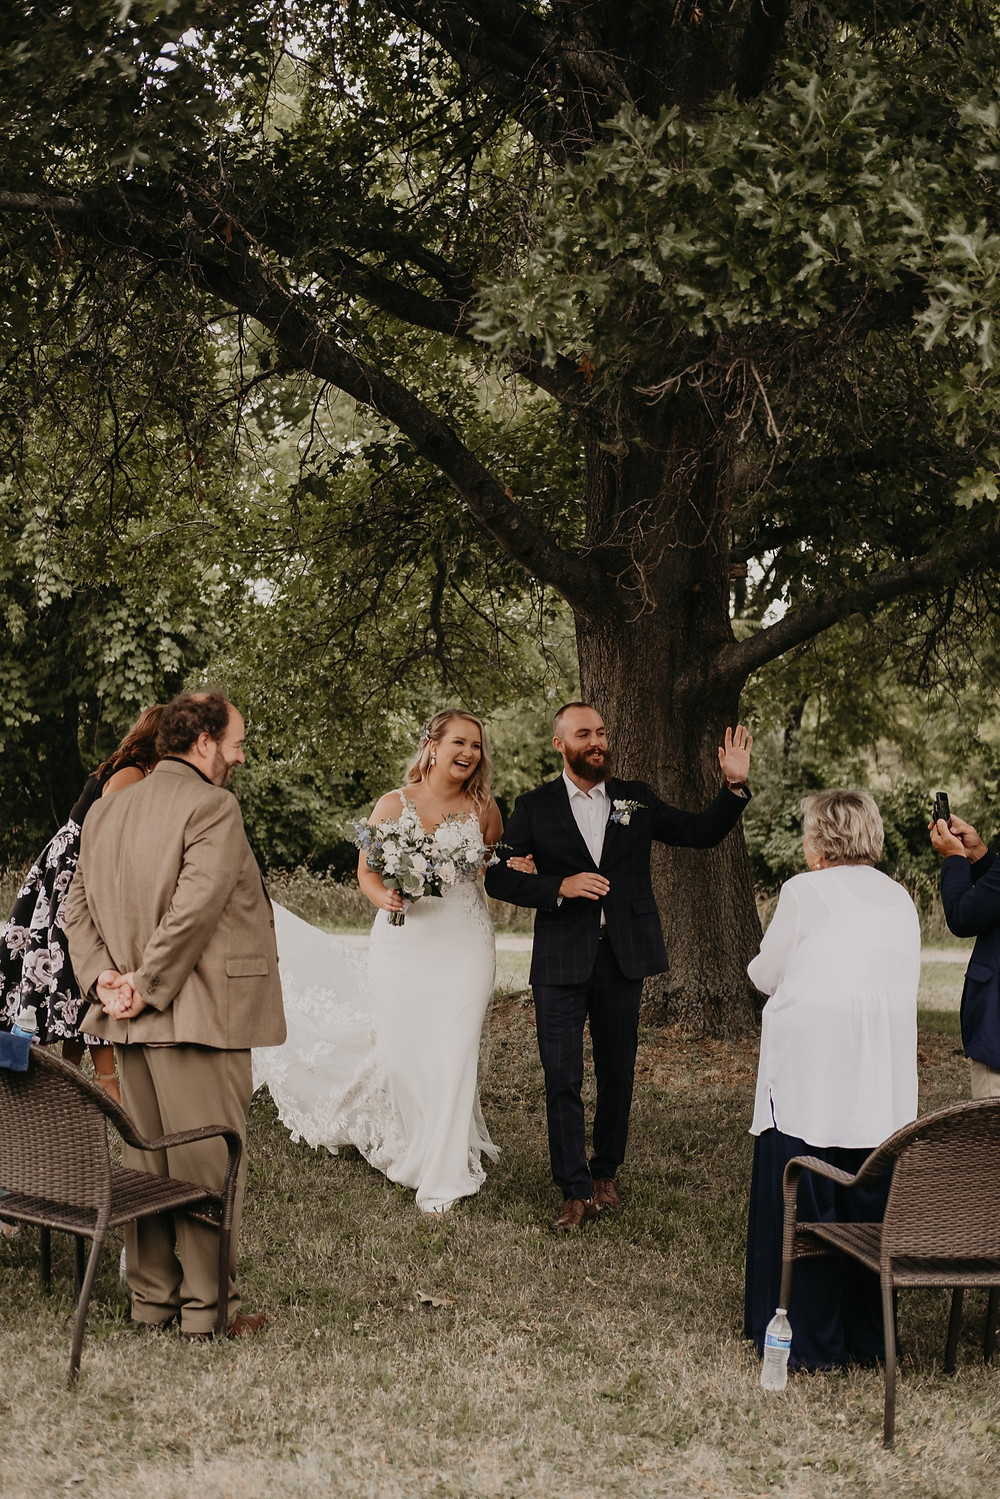 Bride and groom walking down aisle after ceremony. Photographed by Nicole Leanne Photography.